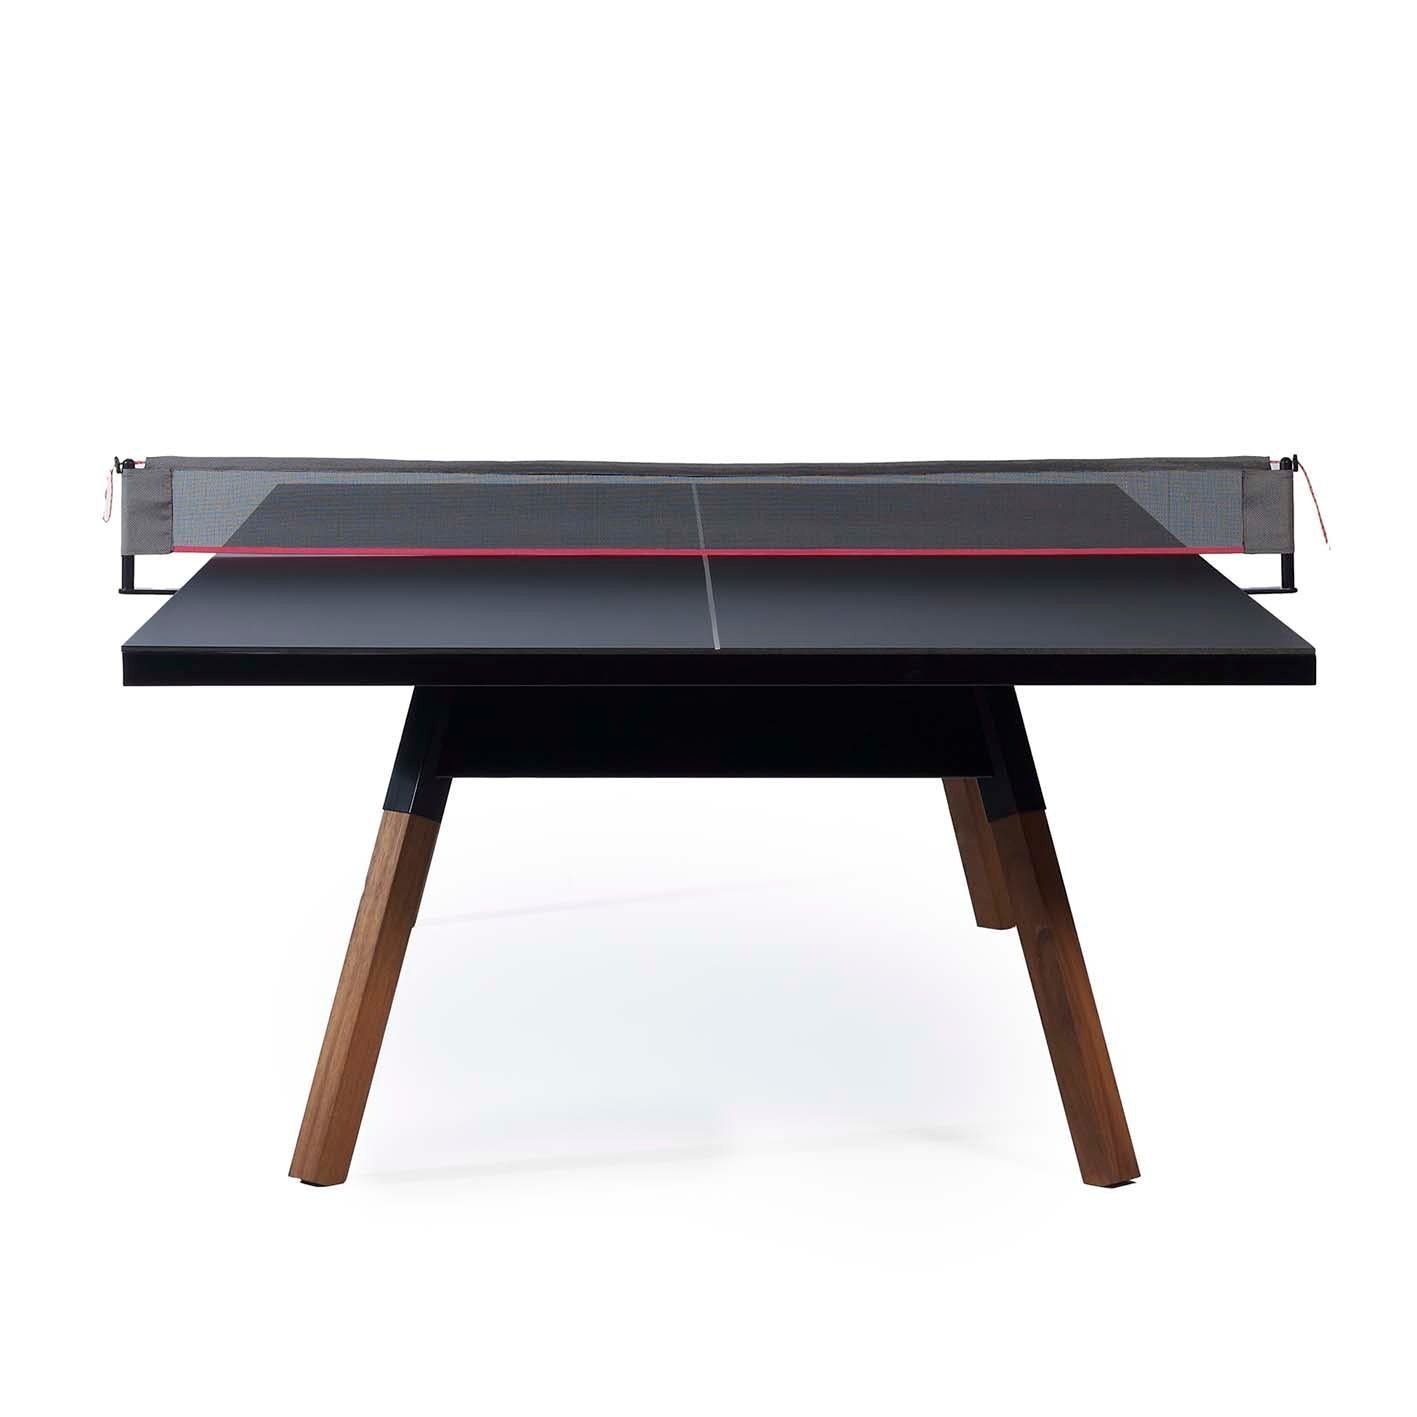 You & Me Table tennis table 220